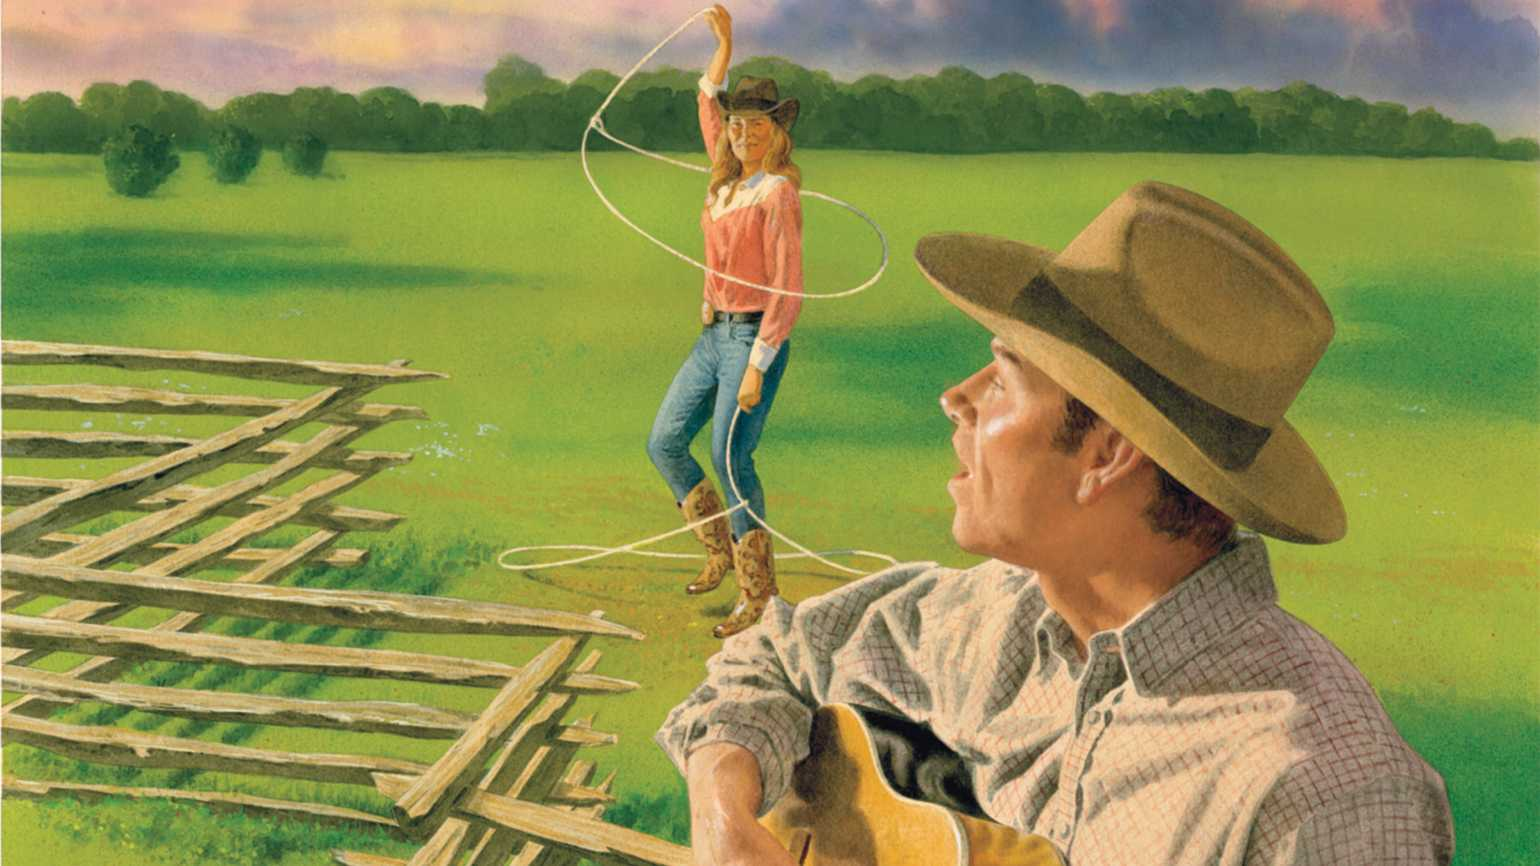 An artist's rendering of a cowboy serenading a lariat-twirling cowgirl